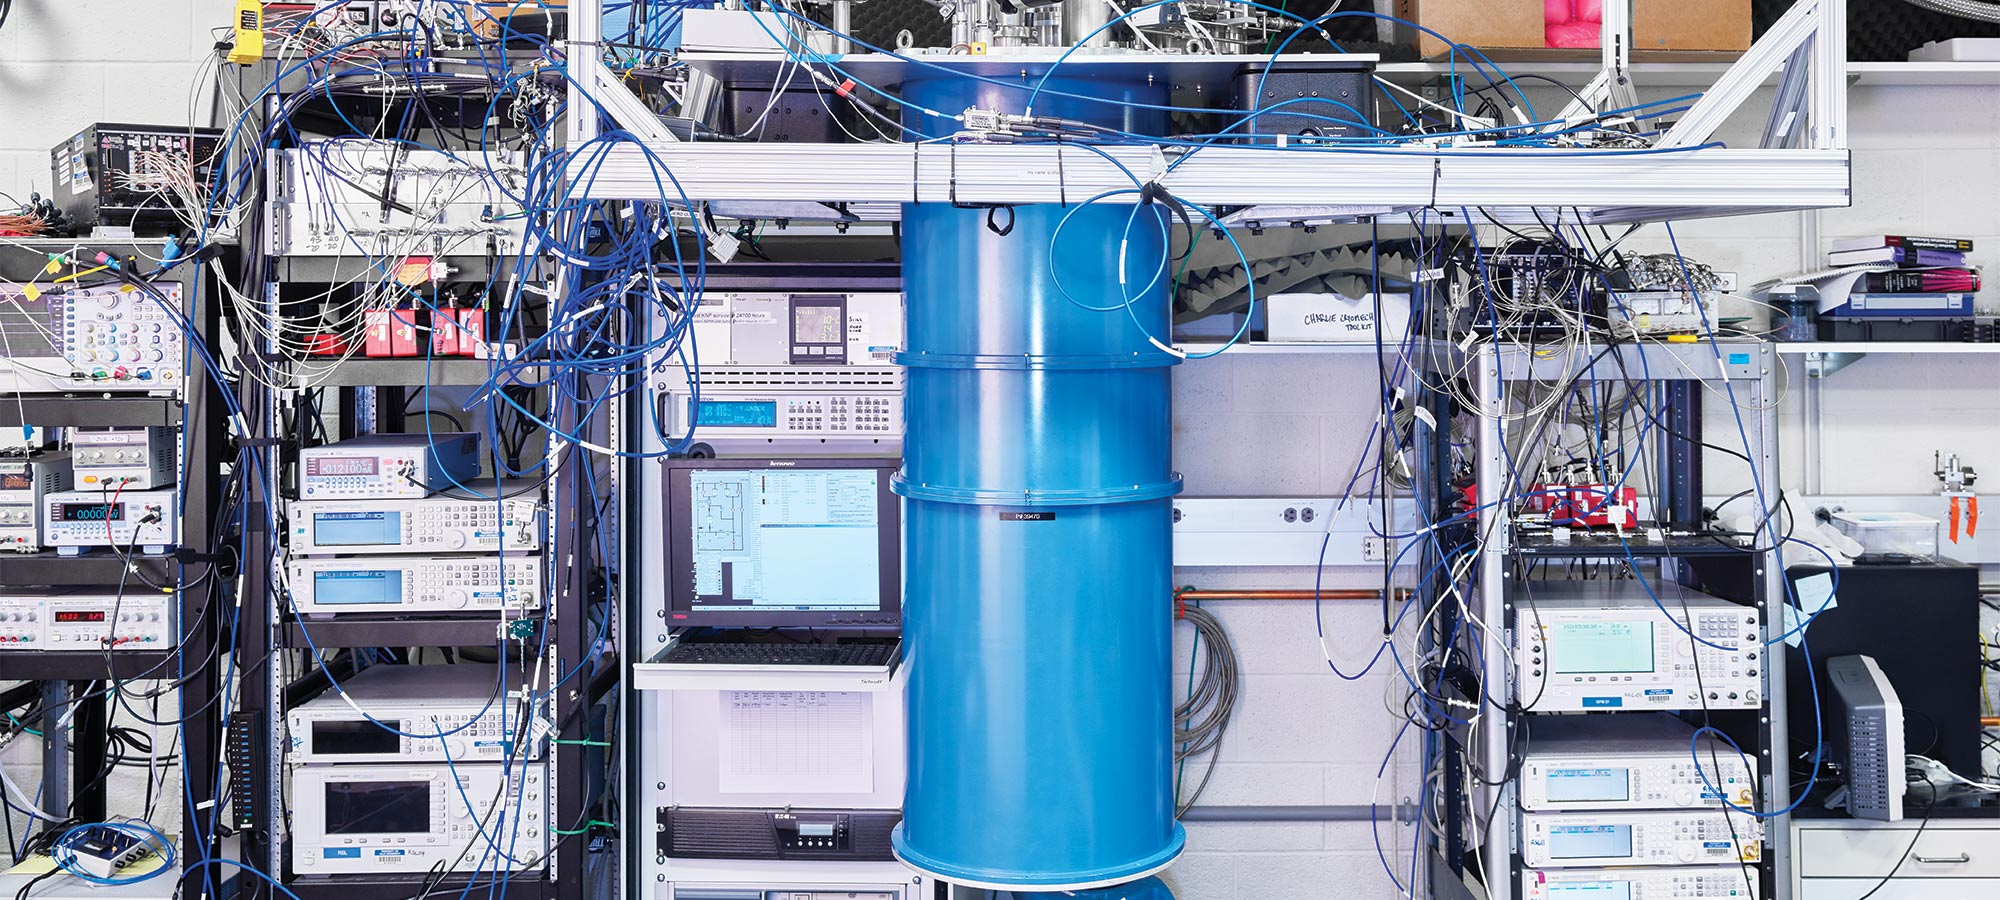 In photos: a rare glimpse inside the heart of a quantum computer